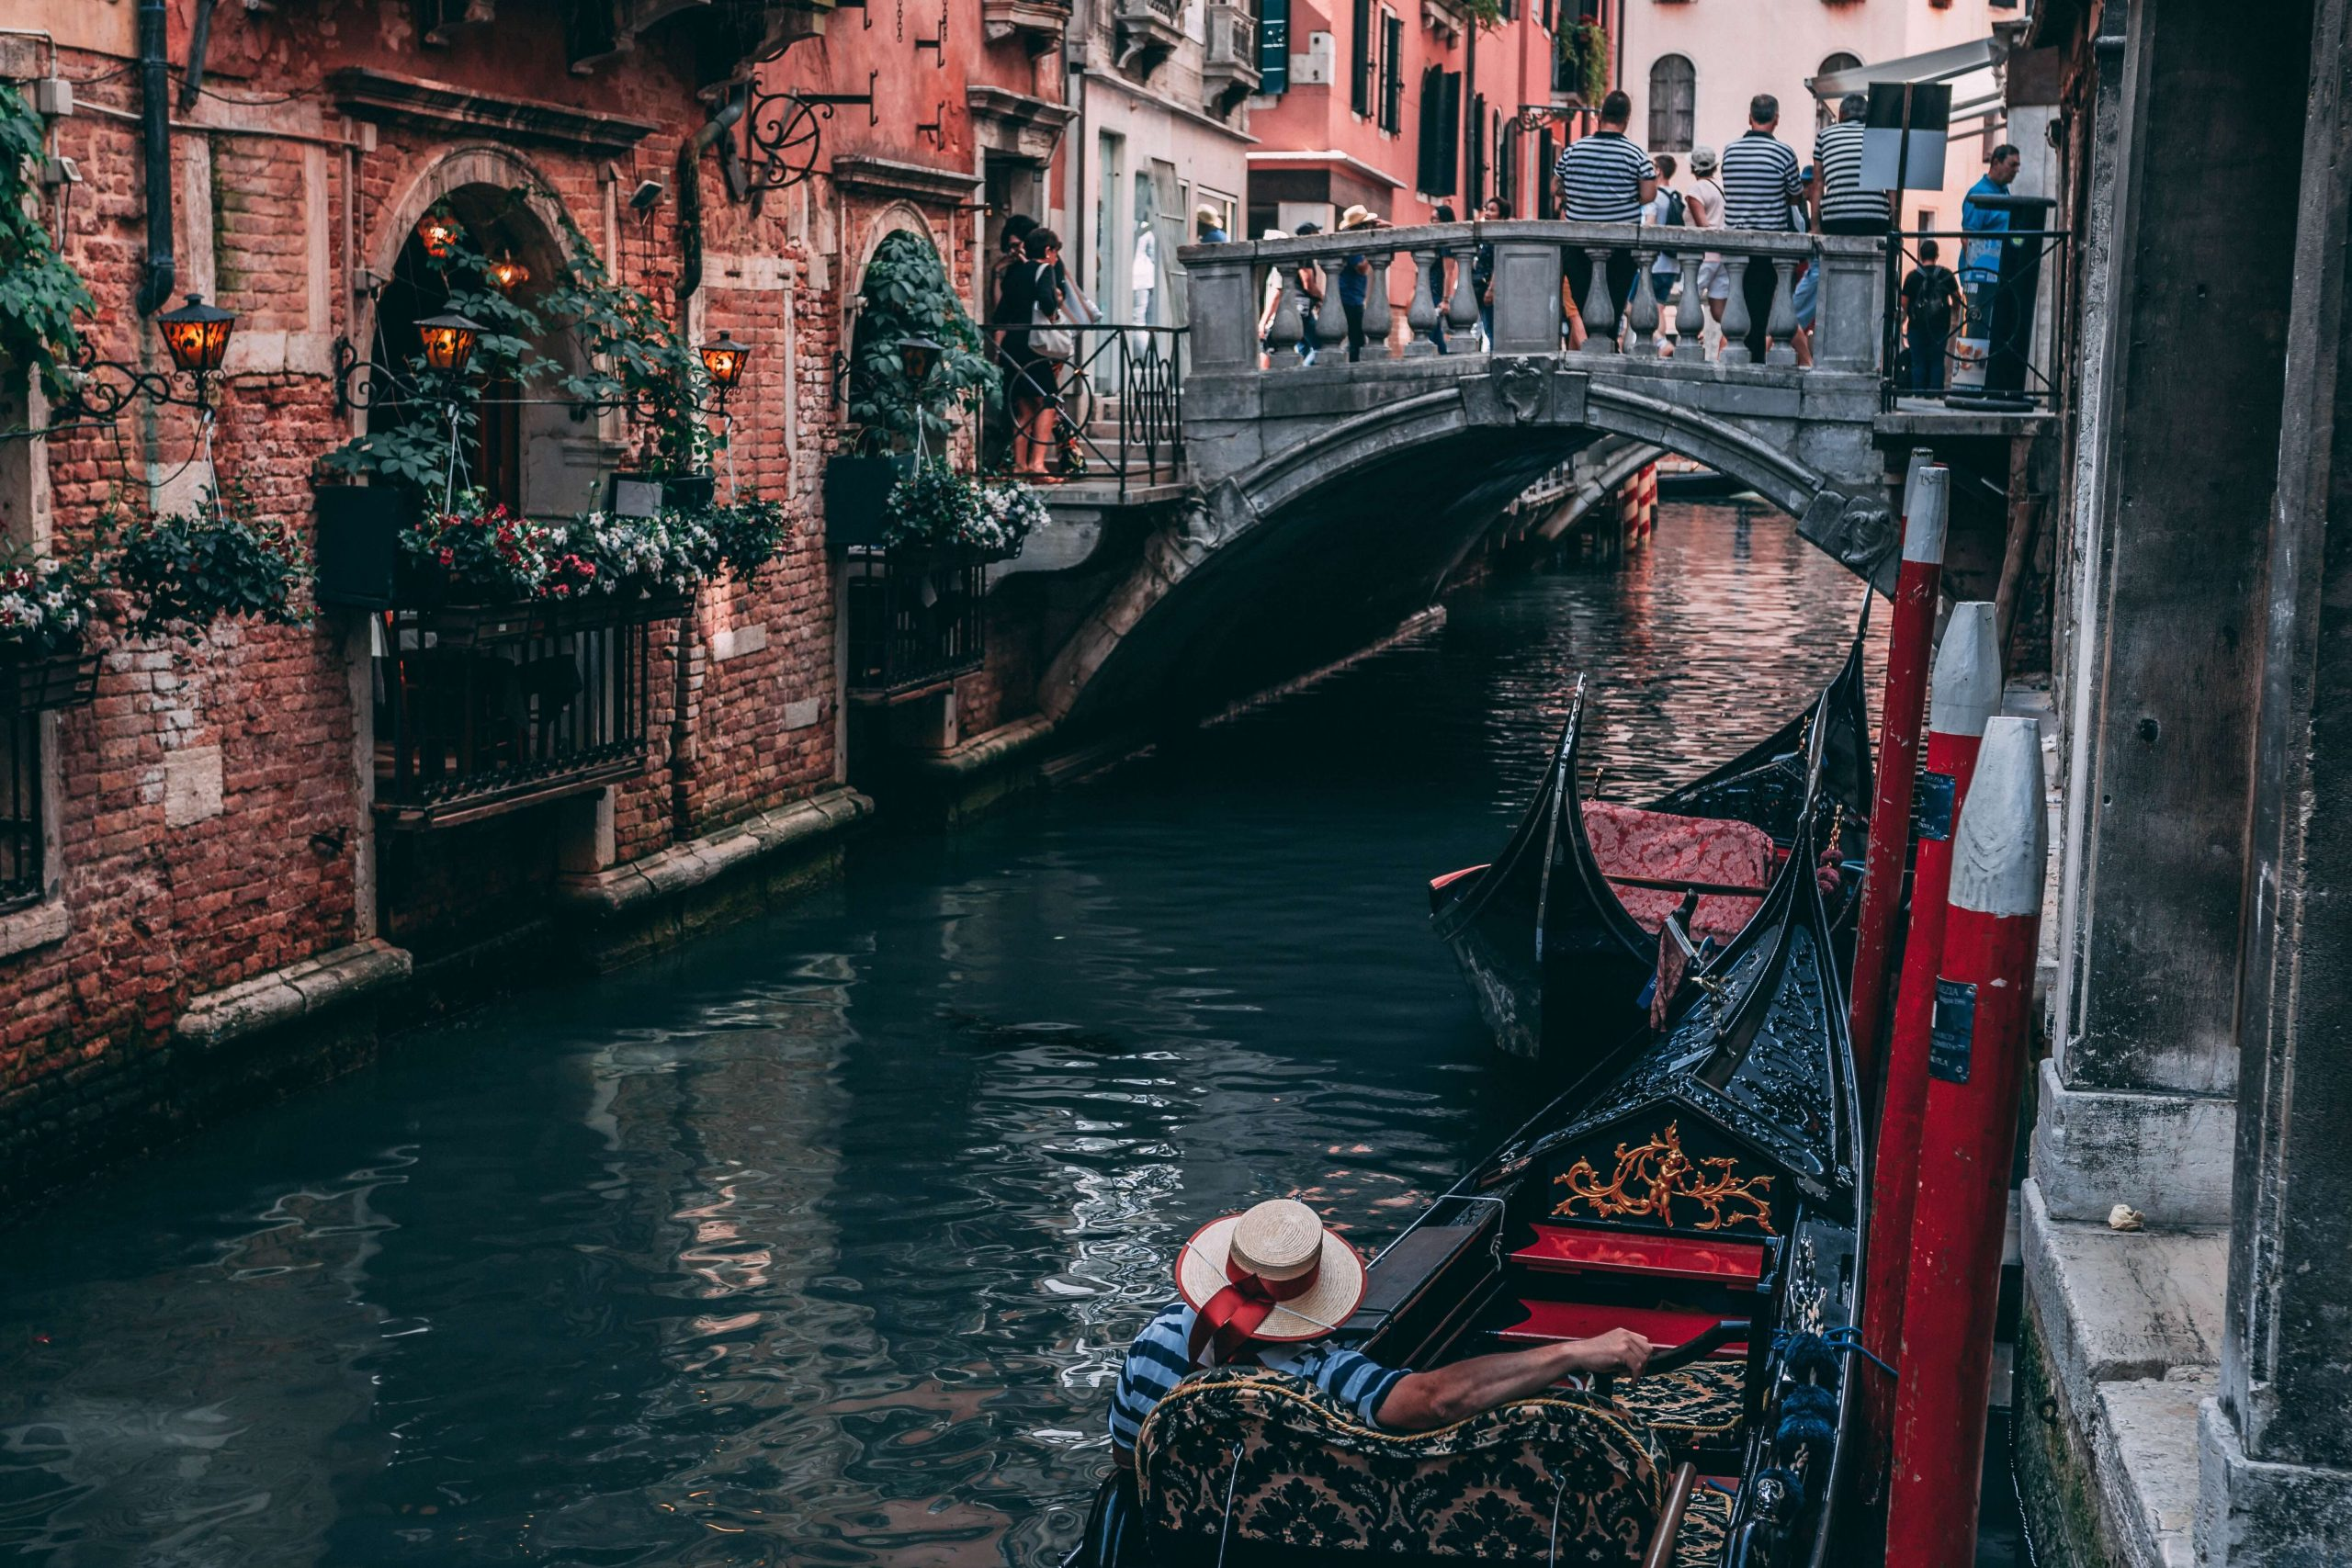 Veneto wines go excellently with a gondola trip in the heart of Venice. Find out more about this Italian wine region